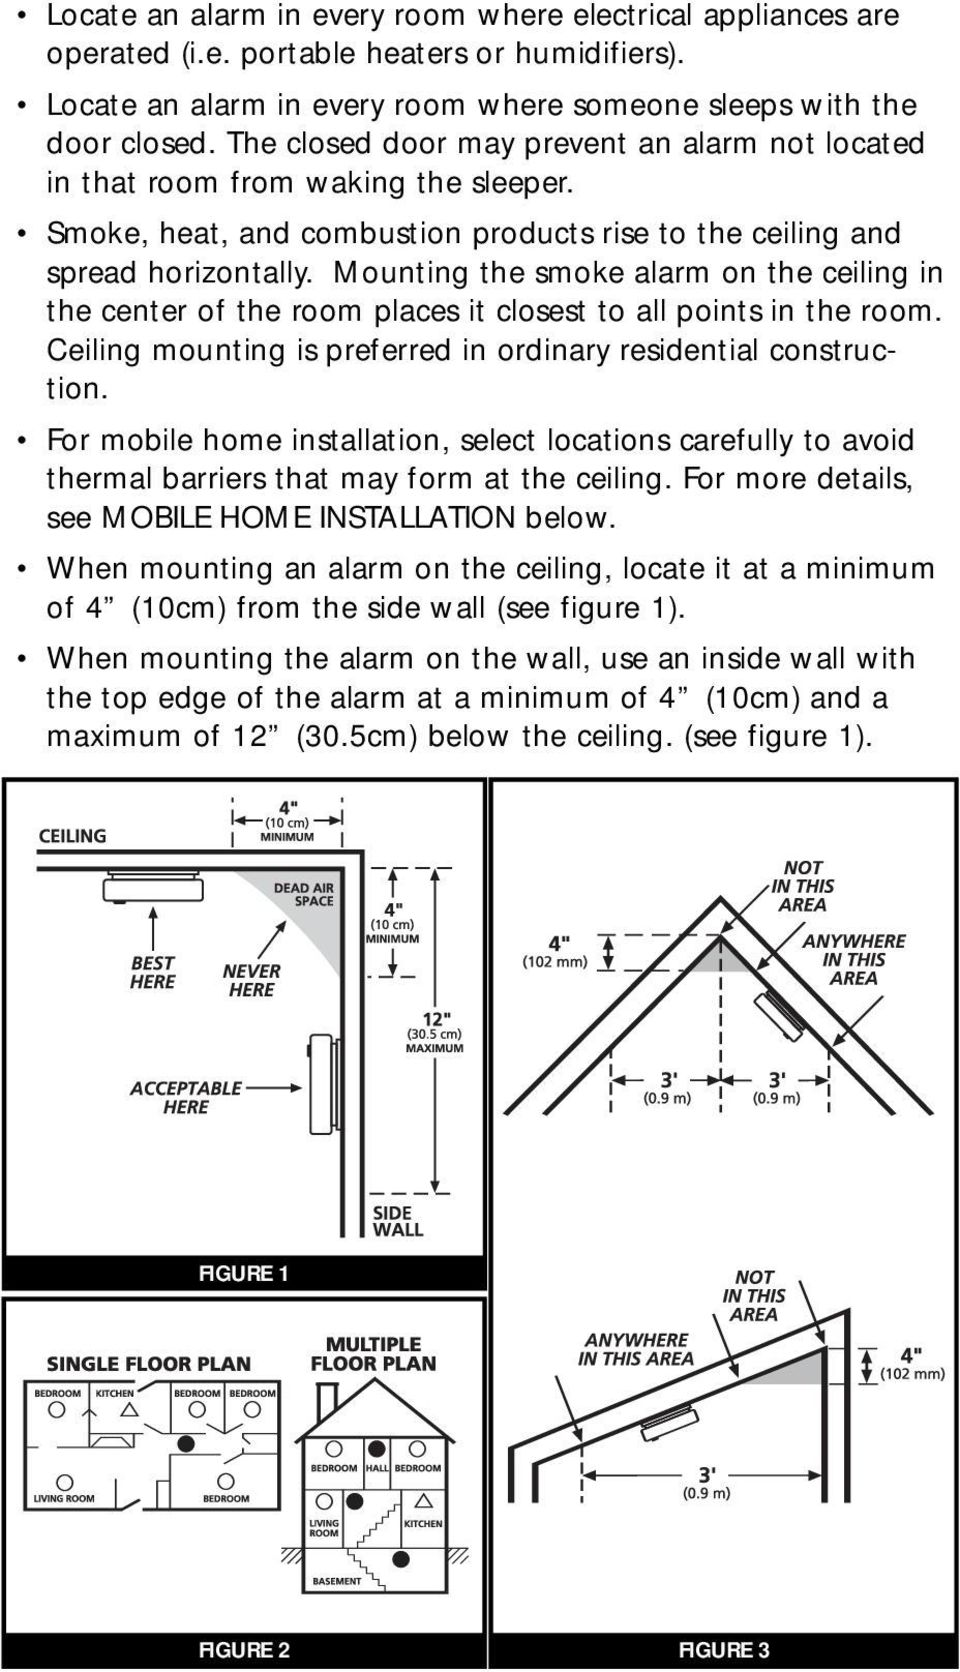 Mounting the smoke alarm on the ceiling in the center of the room places it closest to all points in the room. Ceiling mounting is preferred in ordinary residential construction.